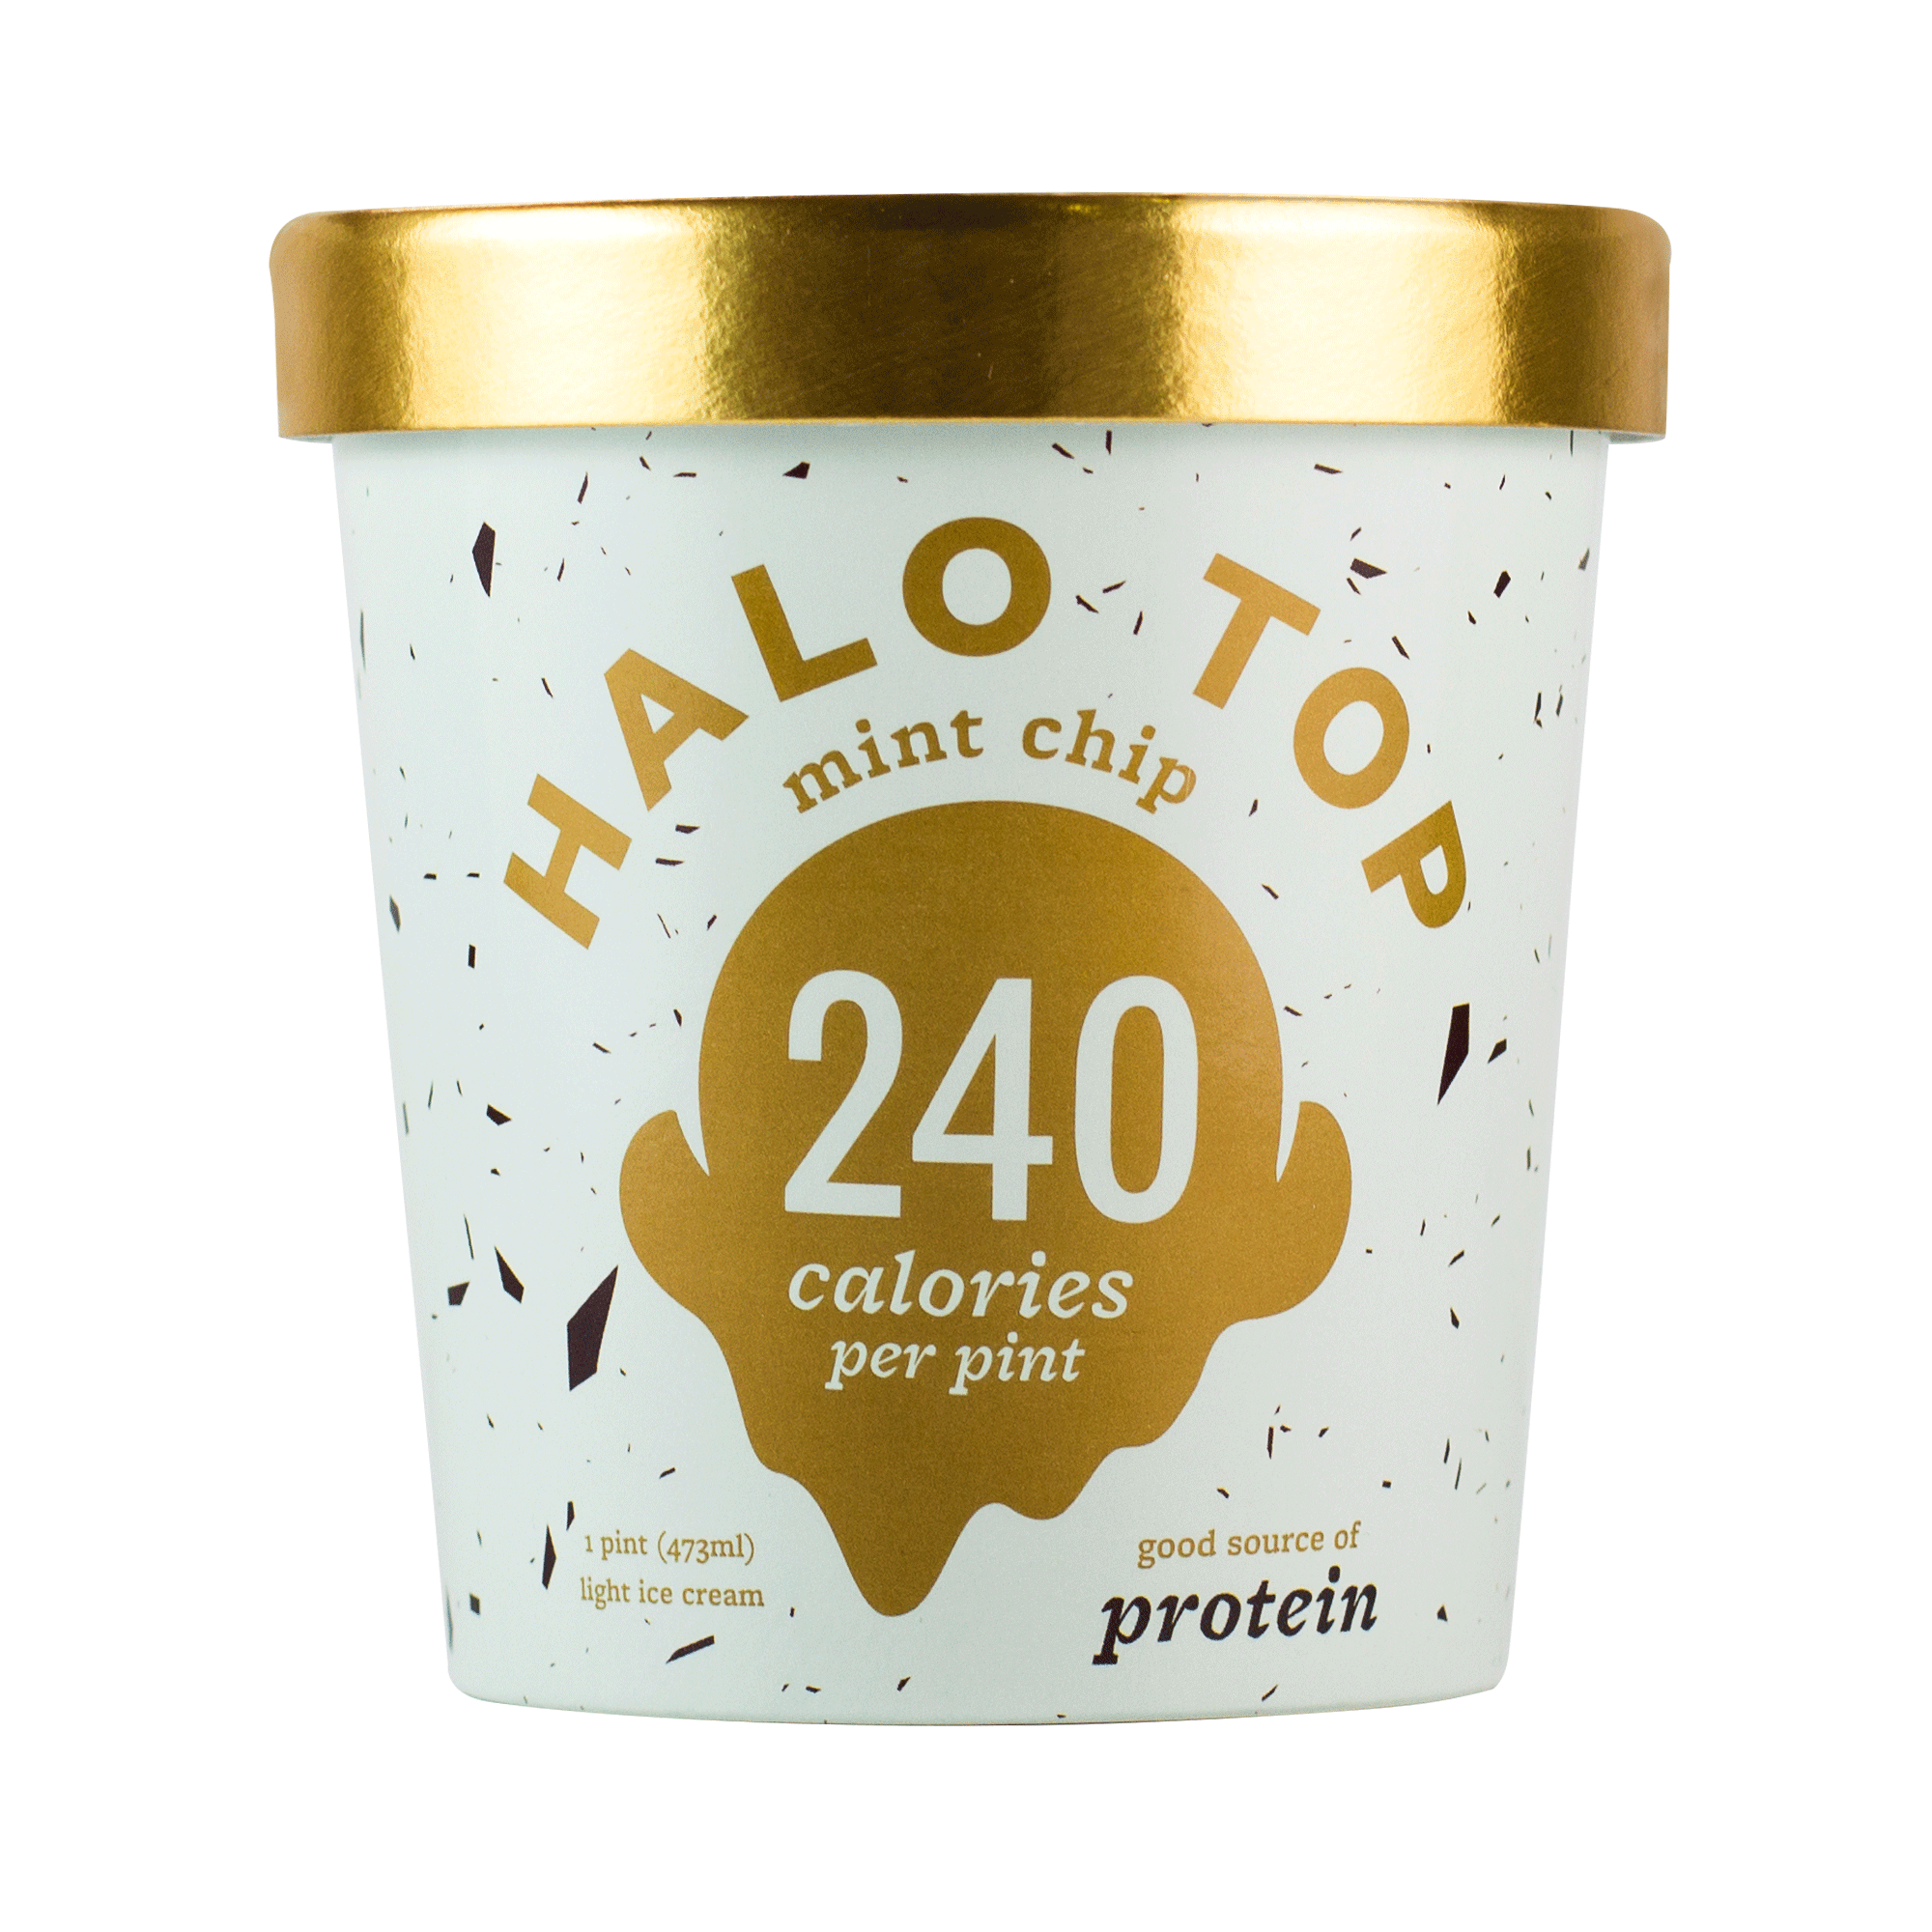 Halo Top Mint Chip Ice Cream, 1 pint